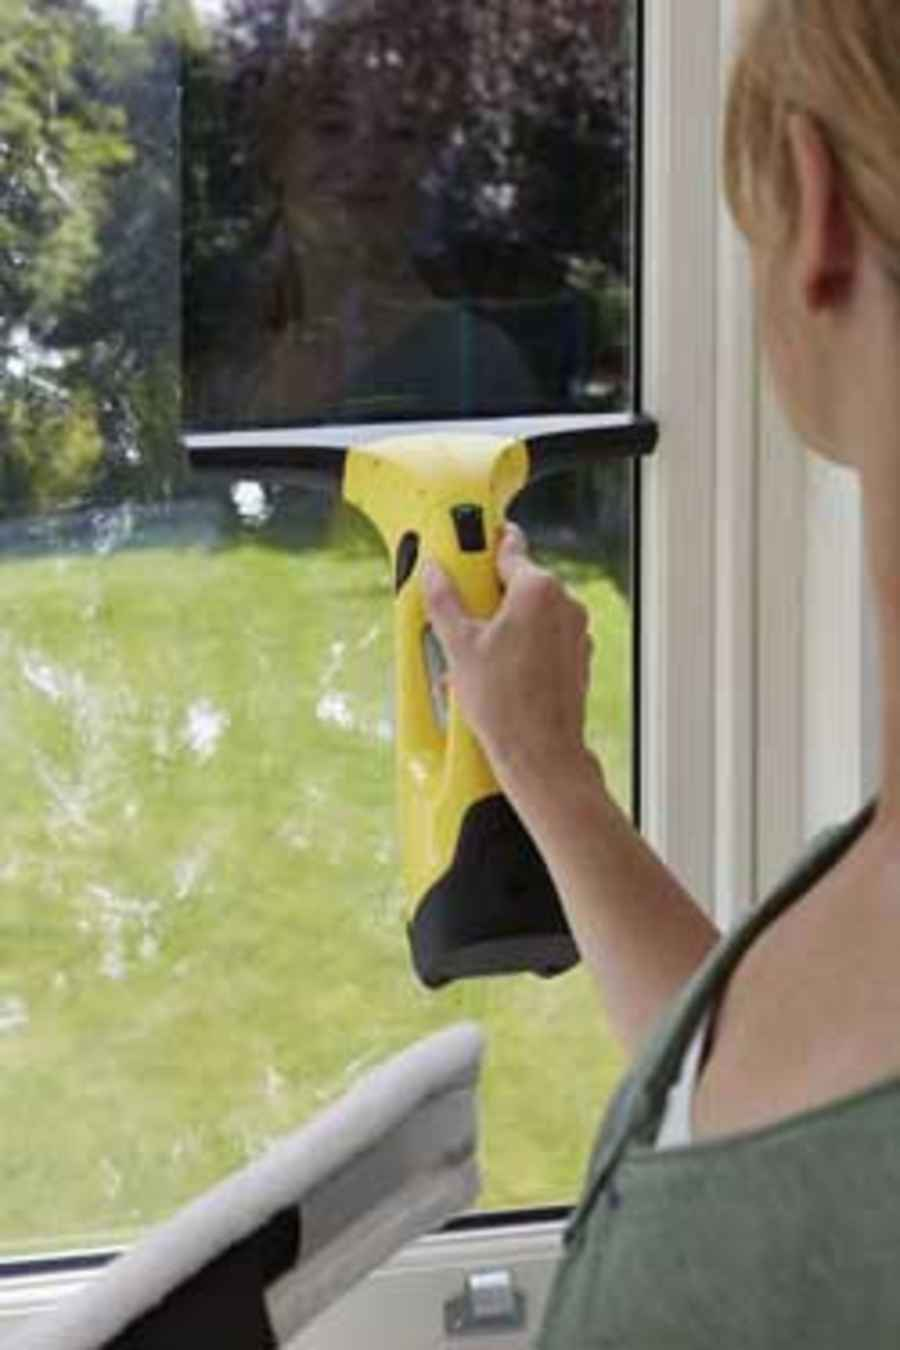 karcher-window-vac-windows